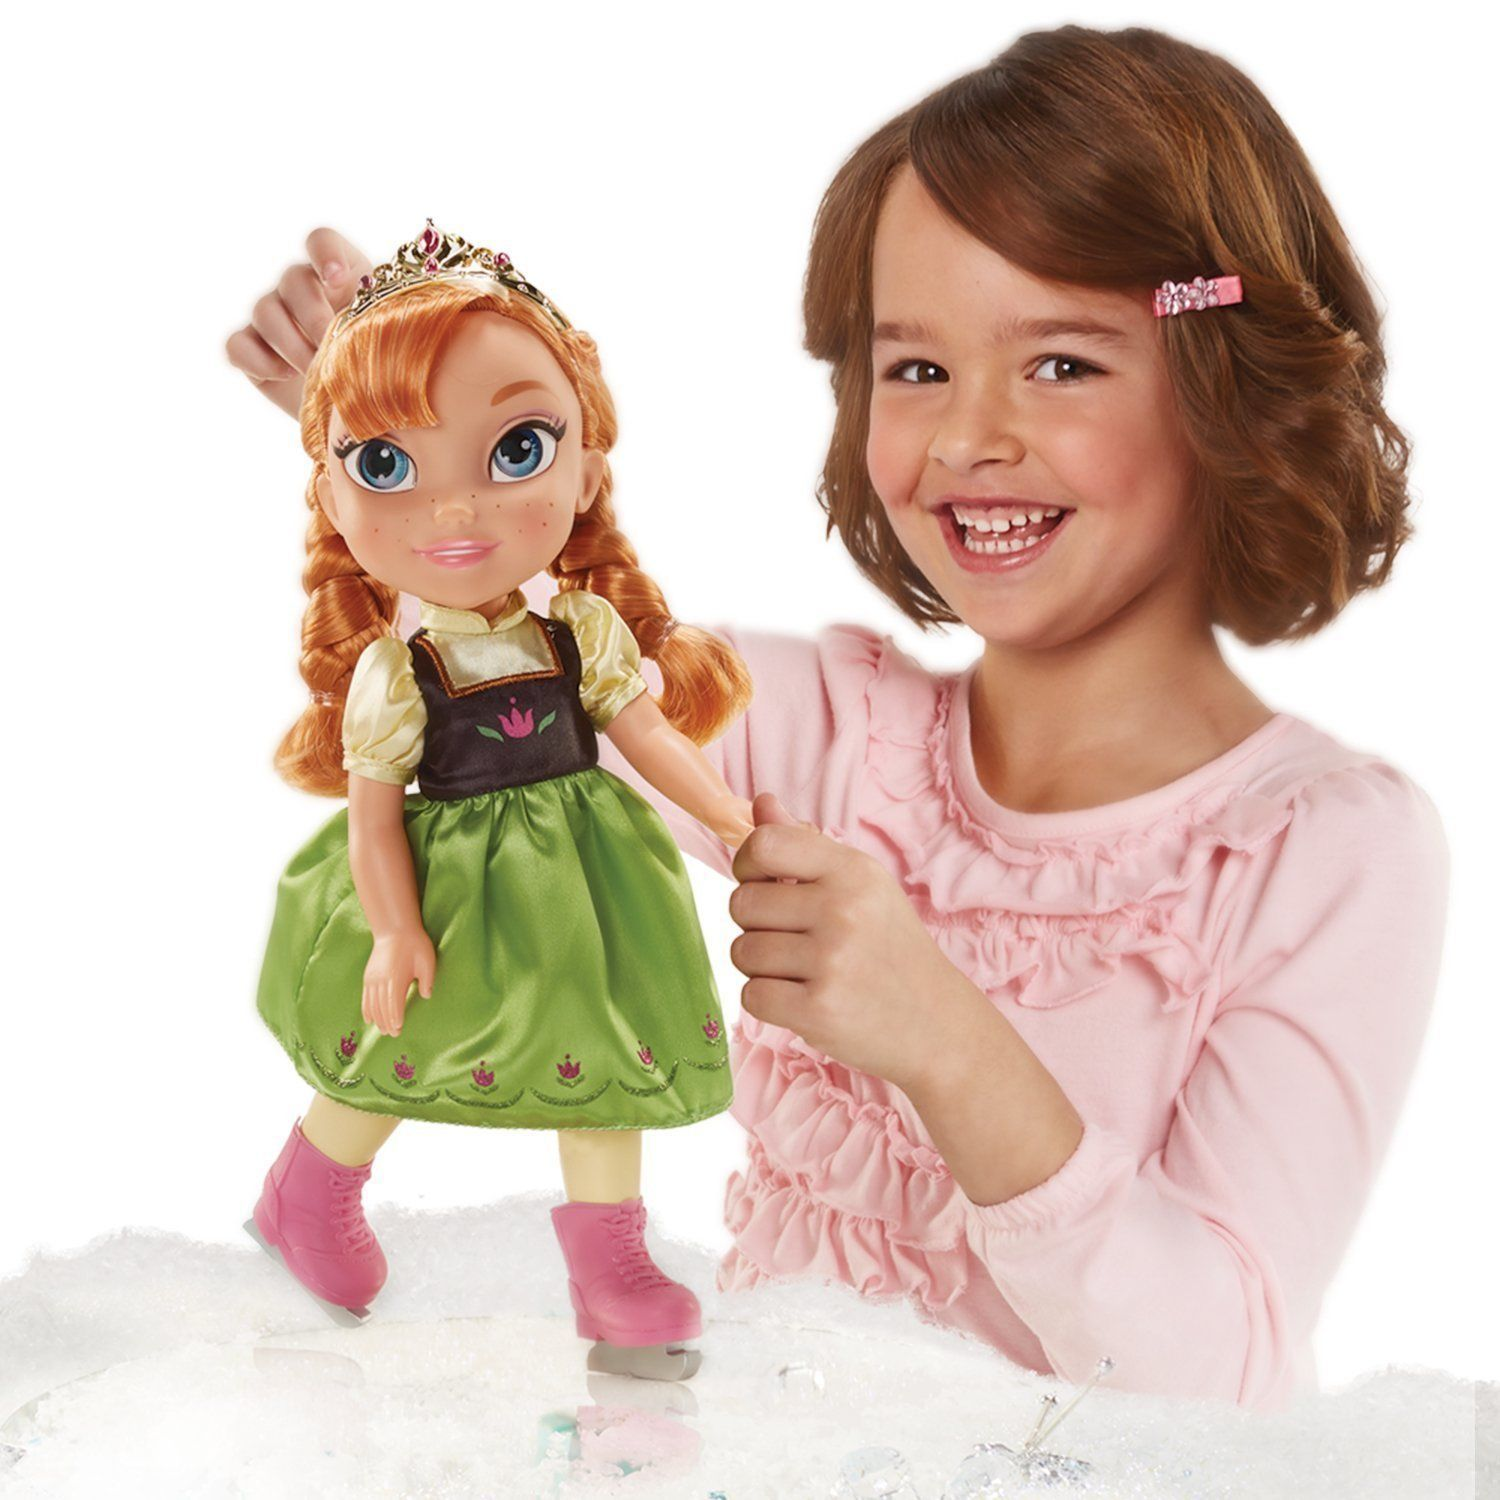 Image 3 of Ice Skating Princess Anna Frozen Toddler Doll Disney, 3+ Years